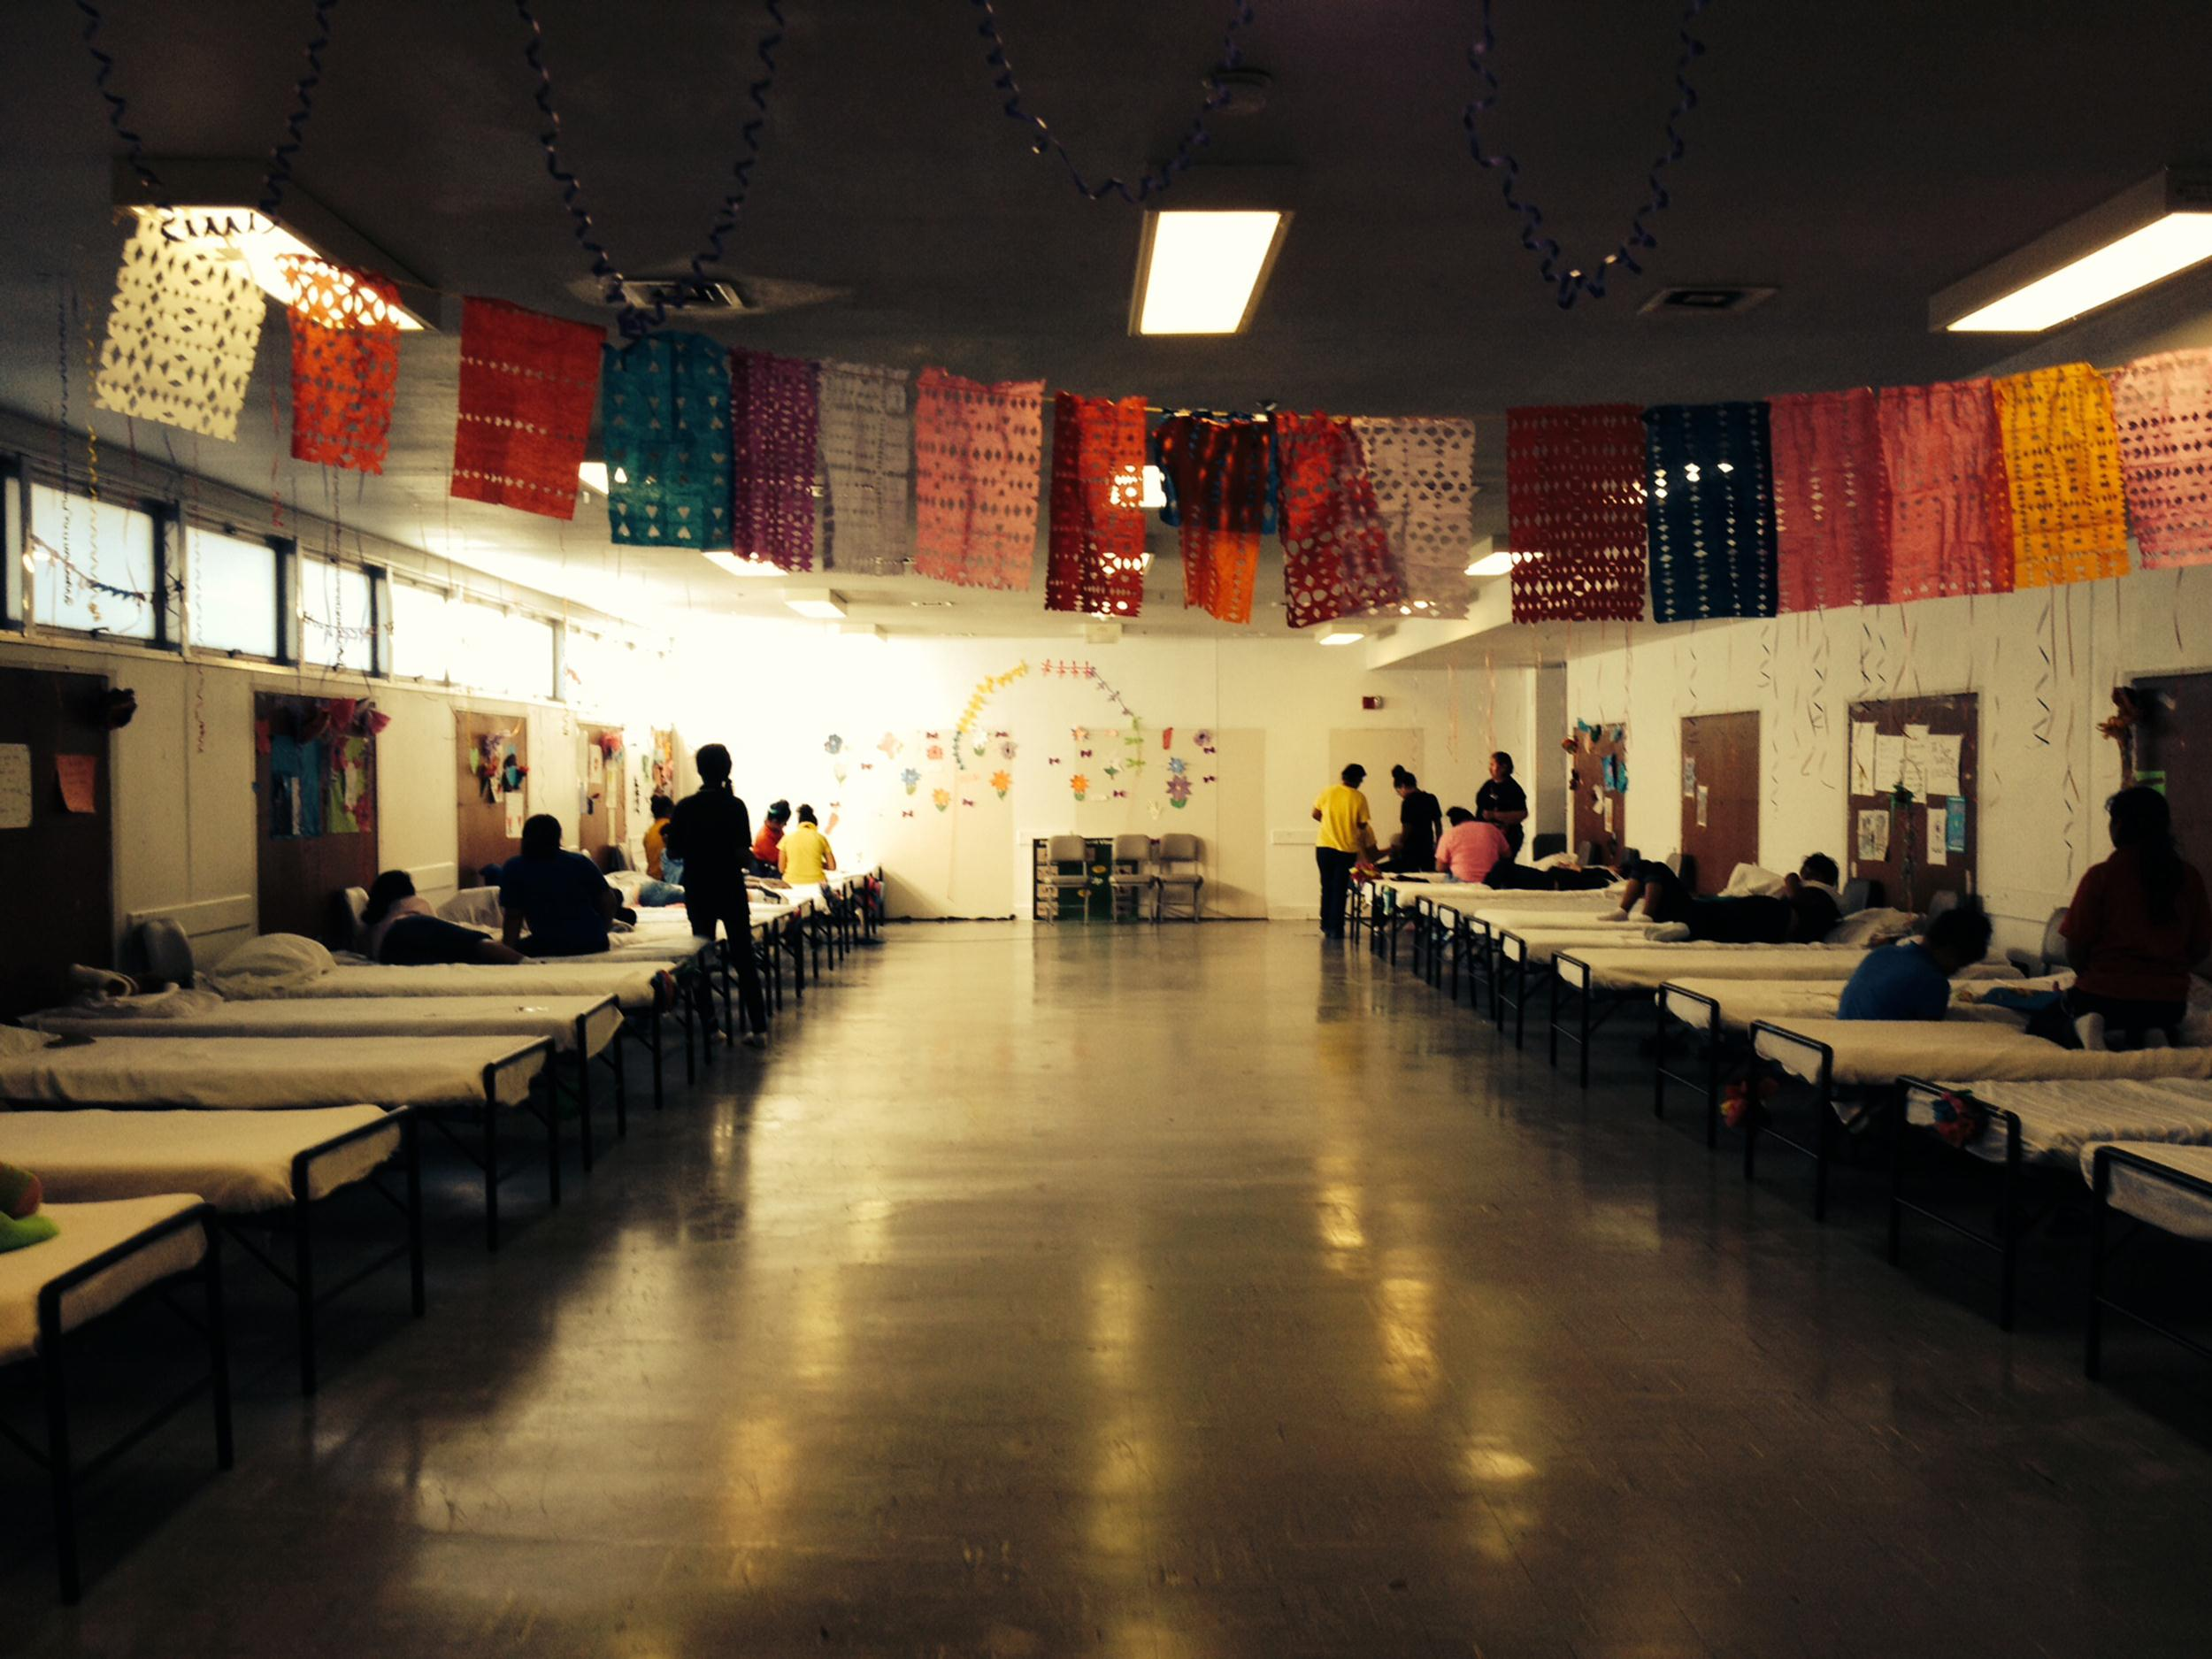 Image: The girls' dormitory of the Joint Base San Antonio Lackland Shelter